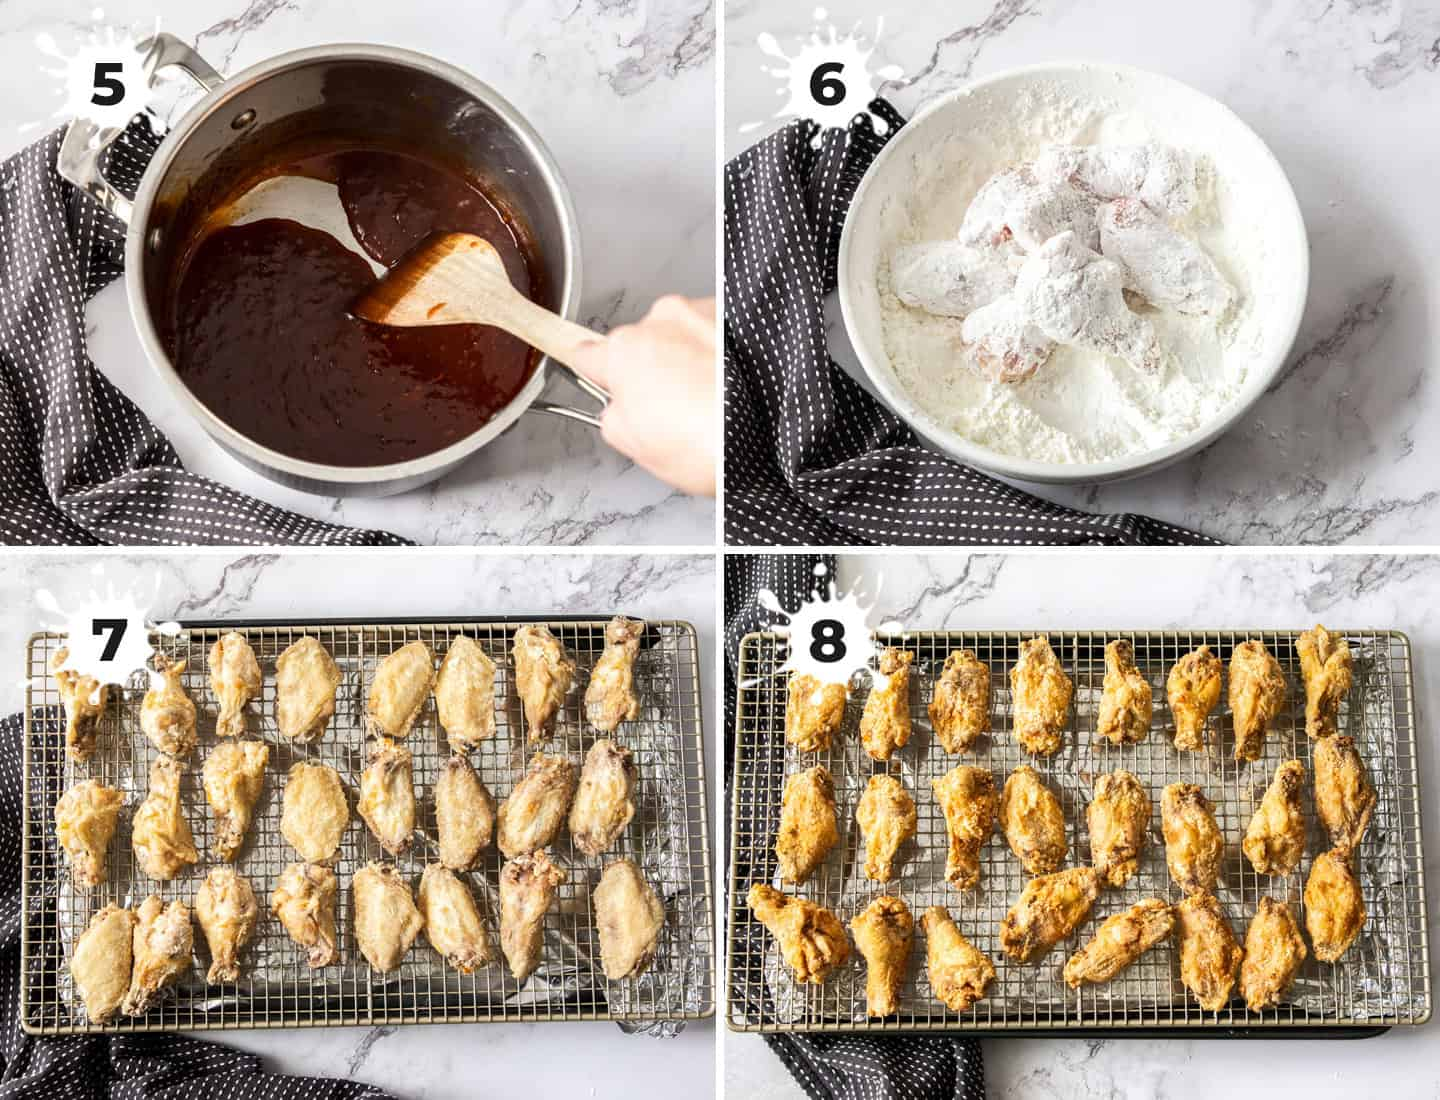 A collage of 4 images showing how to coat and fry chicken wings.